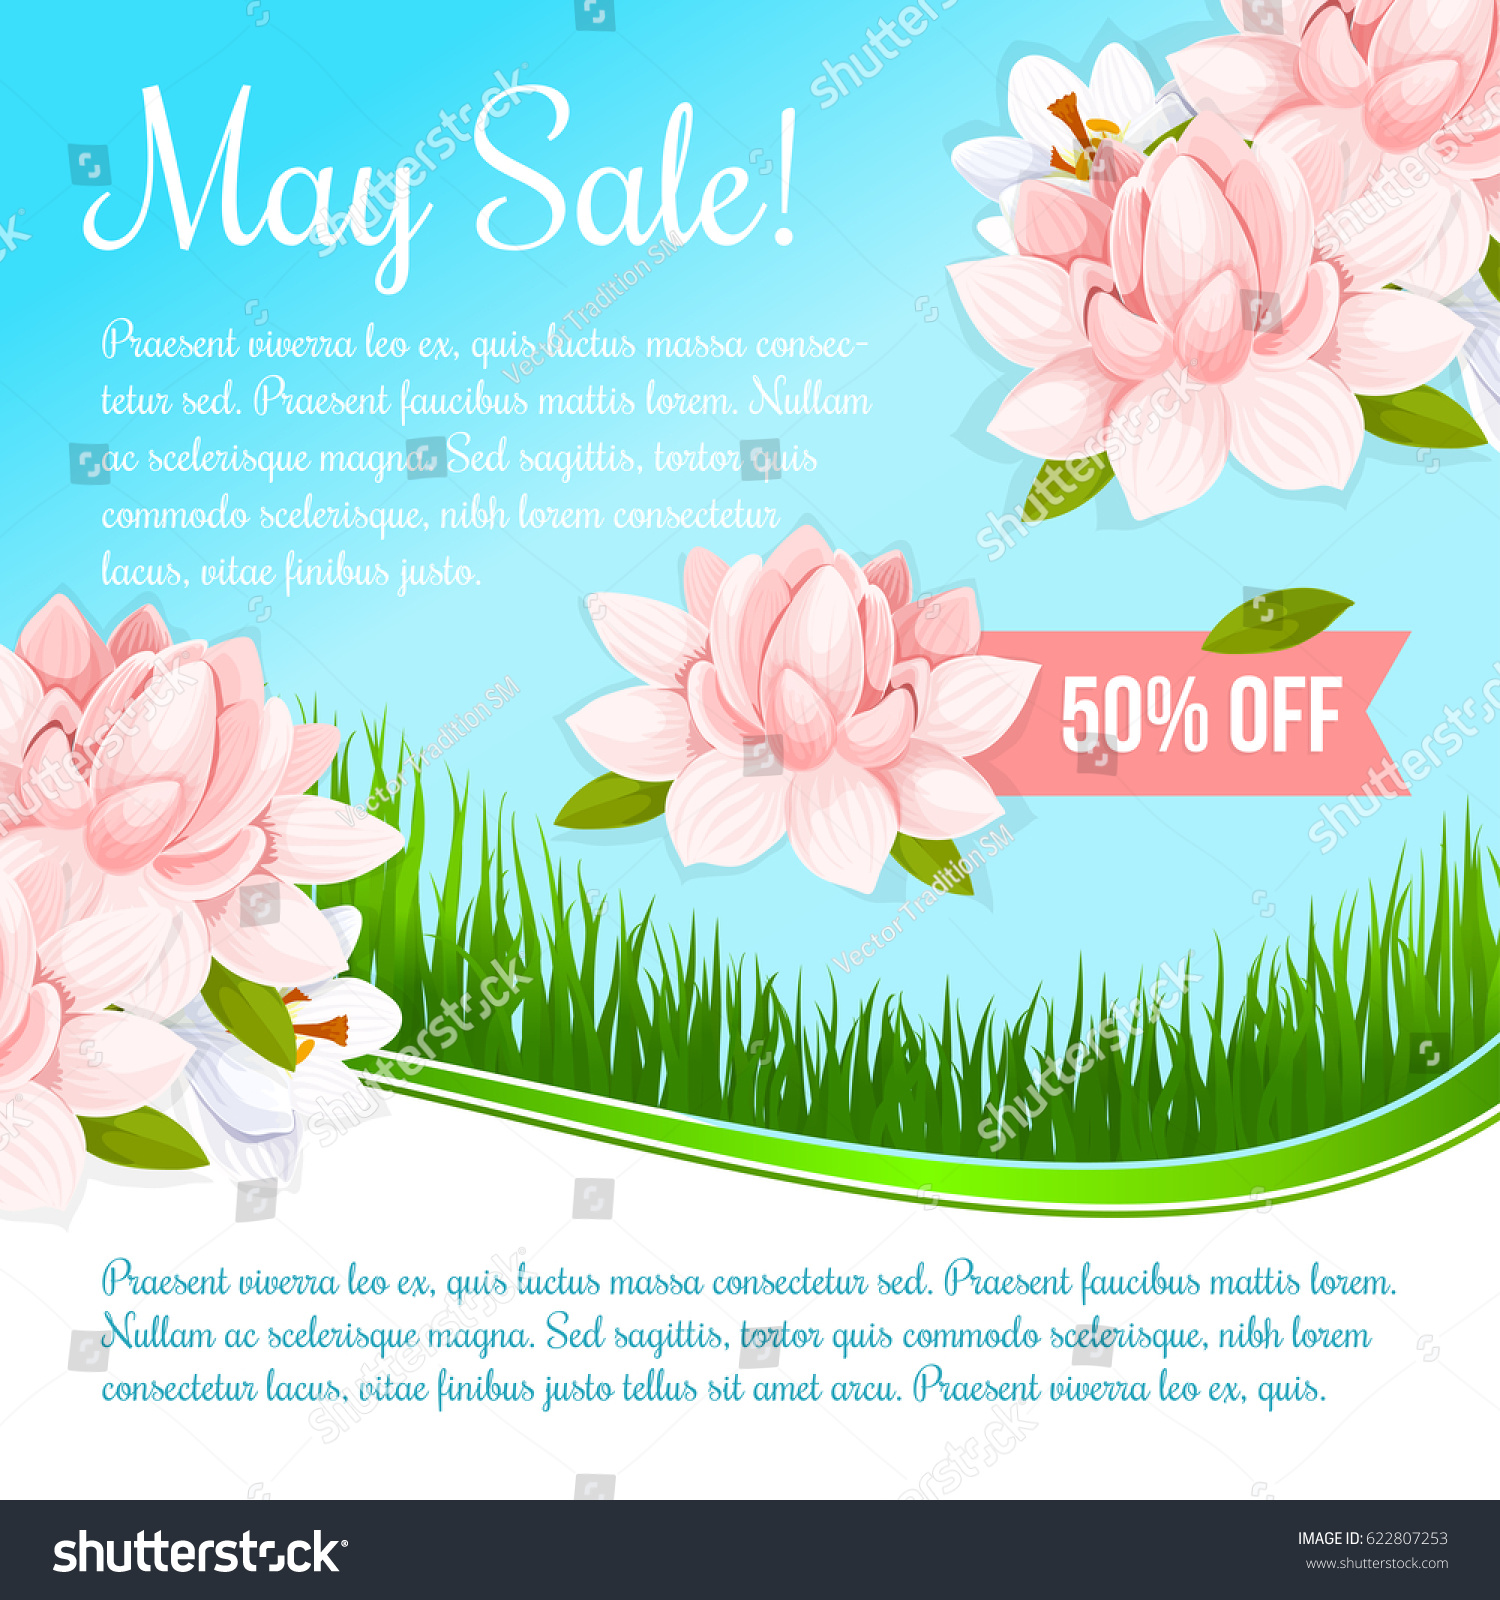 May Spring Sale Vector Poster Lotus Stock Vector 622807253